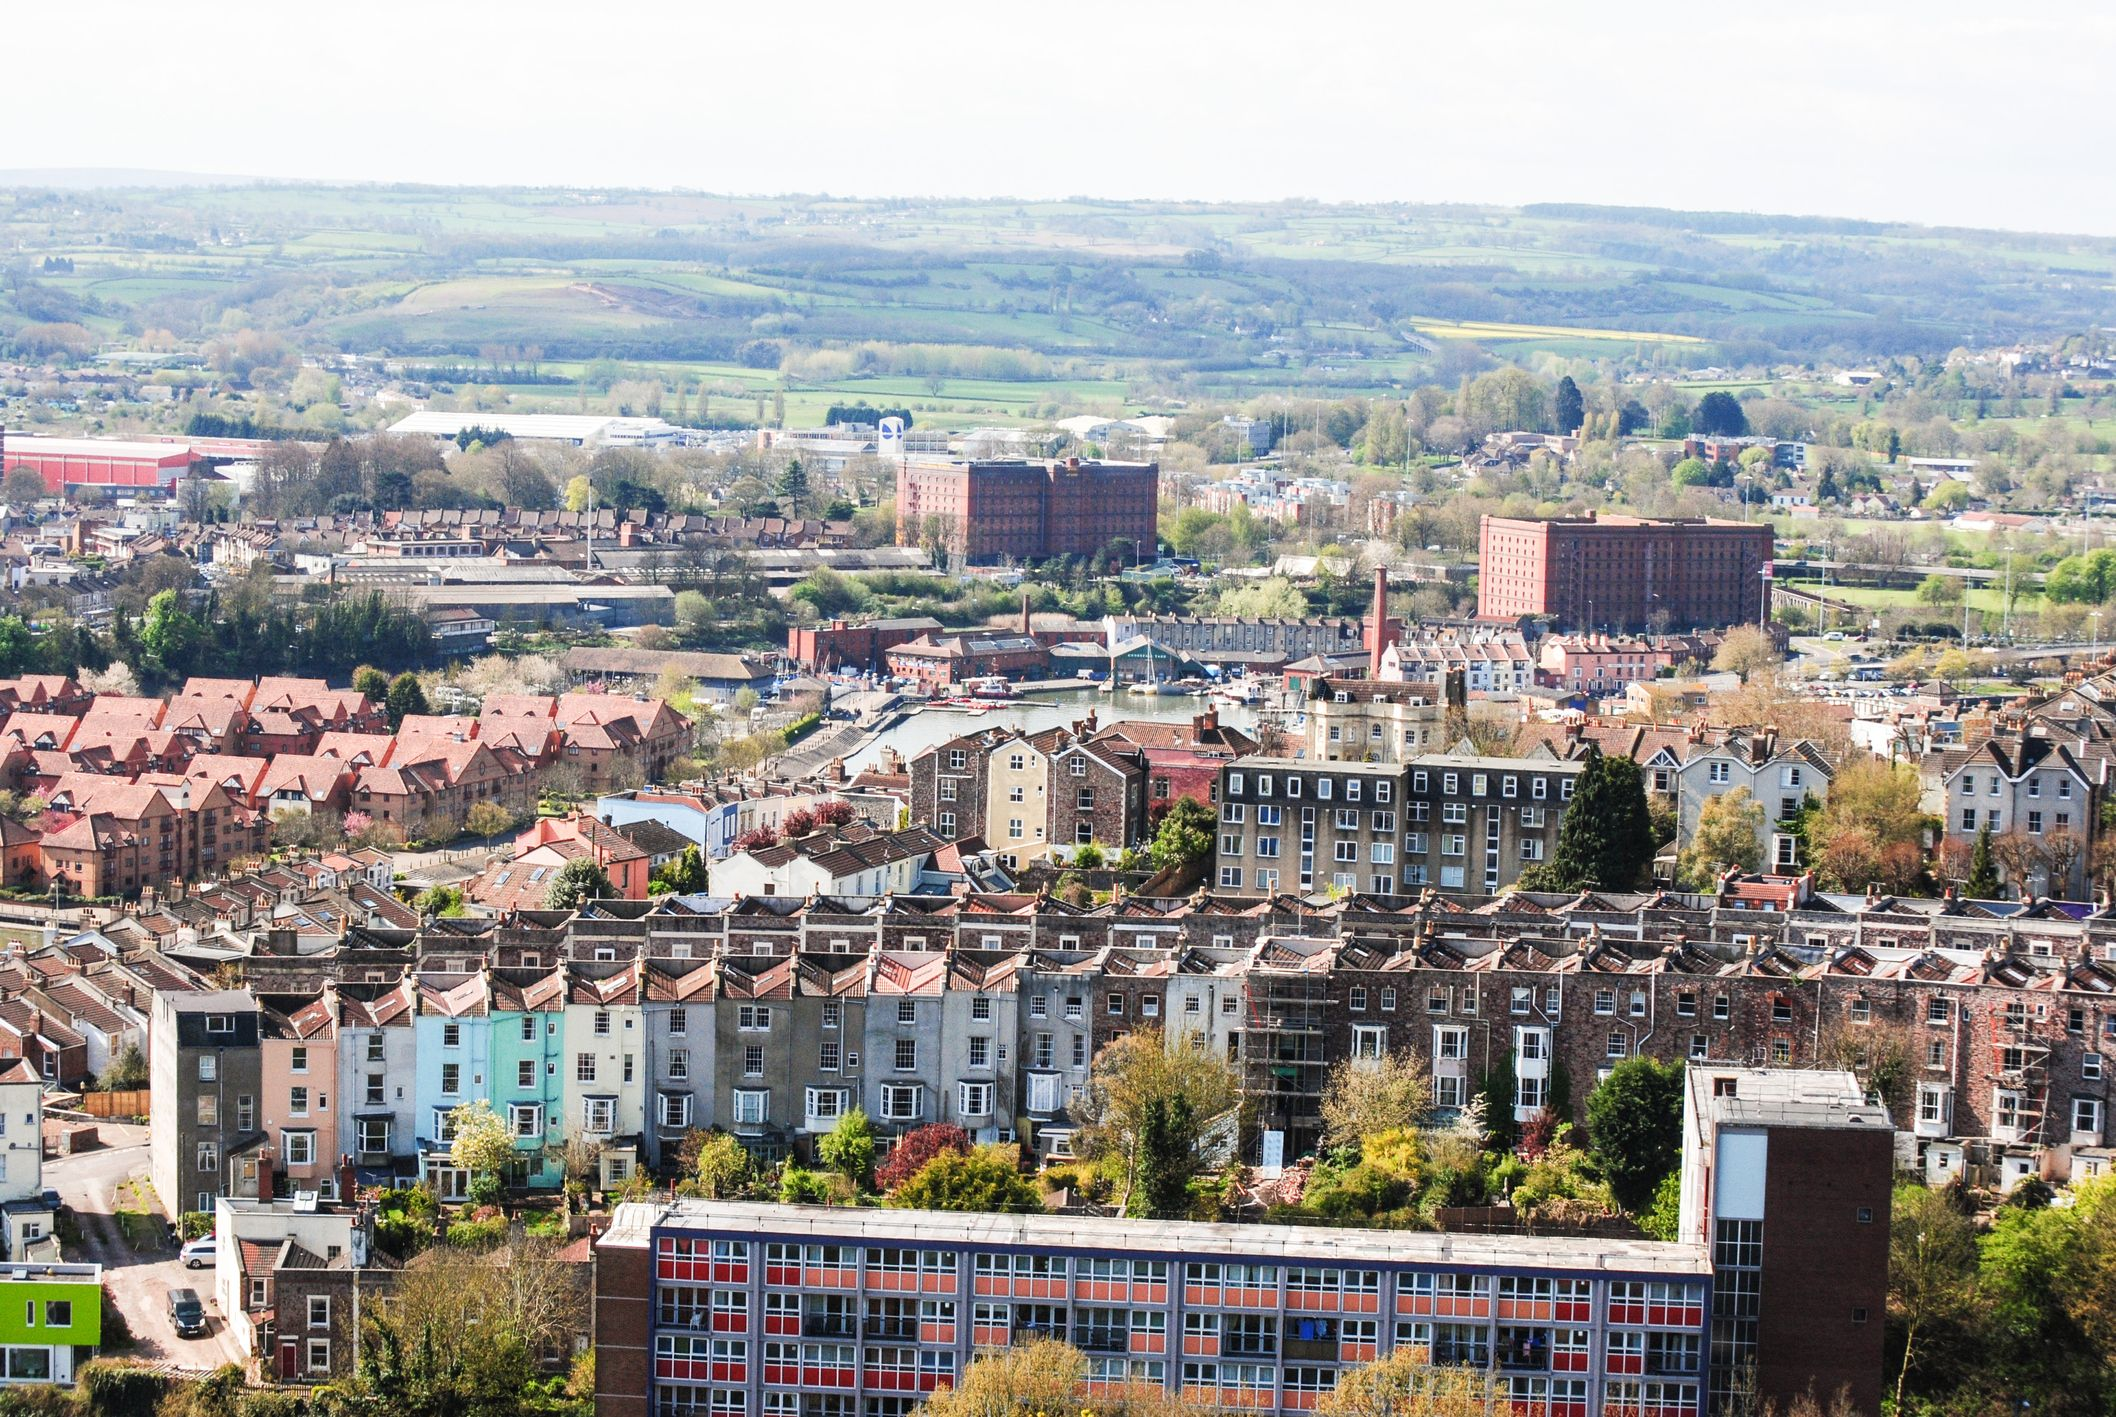 View on houses in Bristol, UK